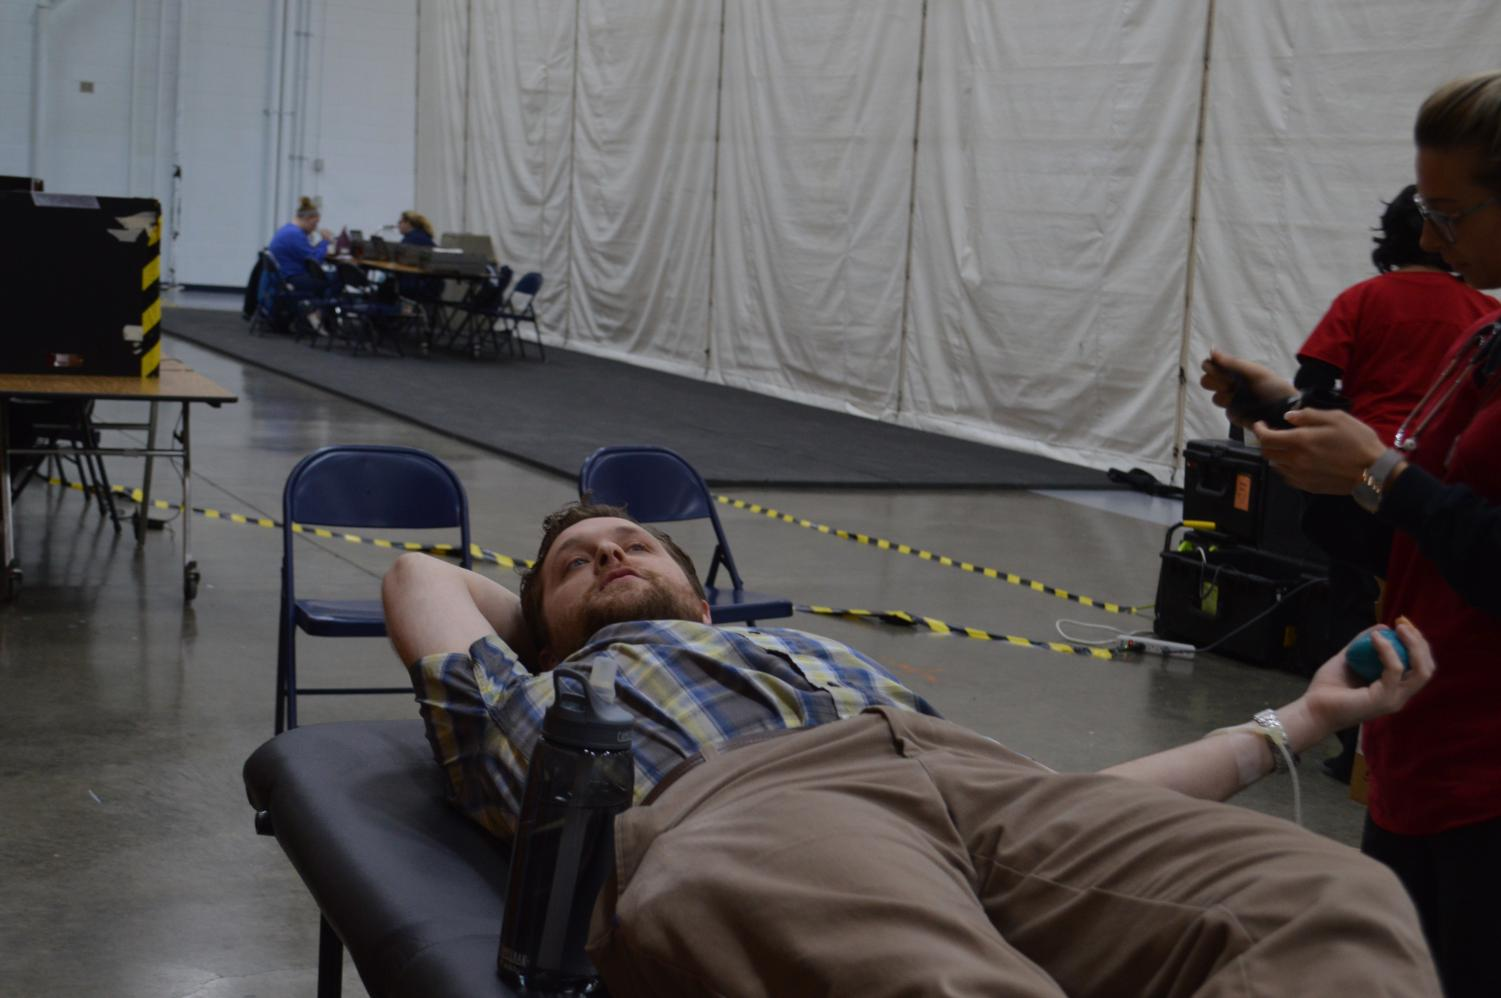 Sophomore+biology+teacher%2C+Jared+Eaton+lays+down+as+he+donates+blood+and+talks+to+students.